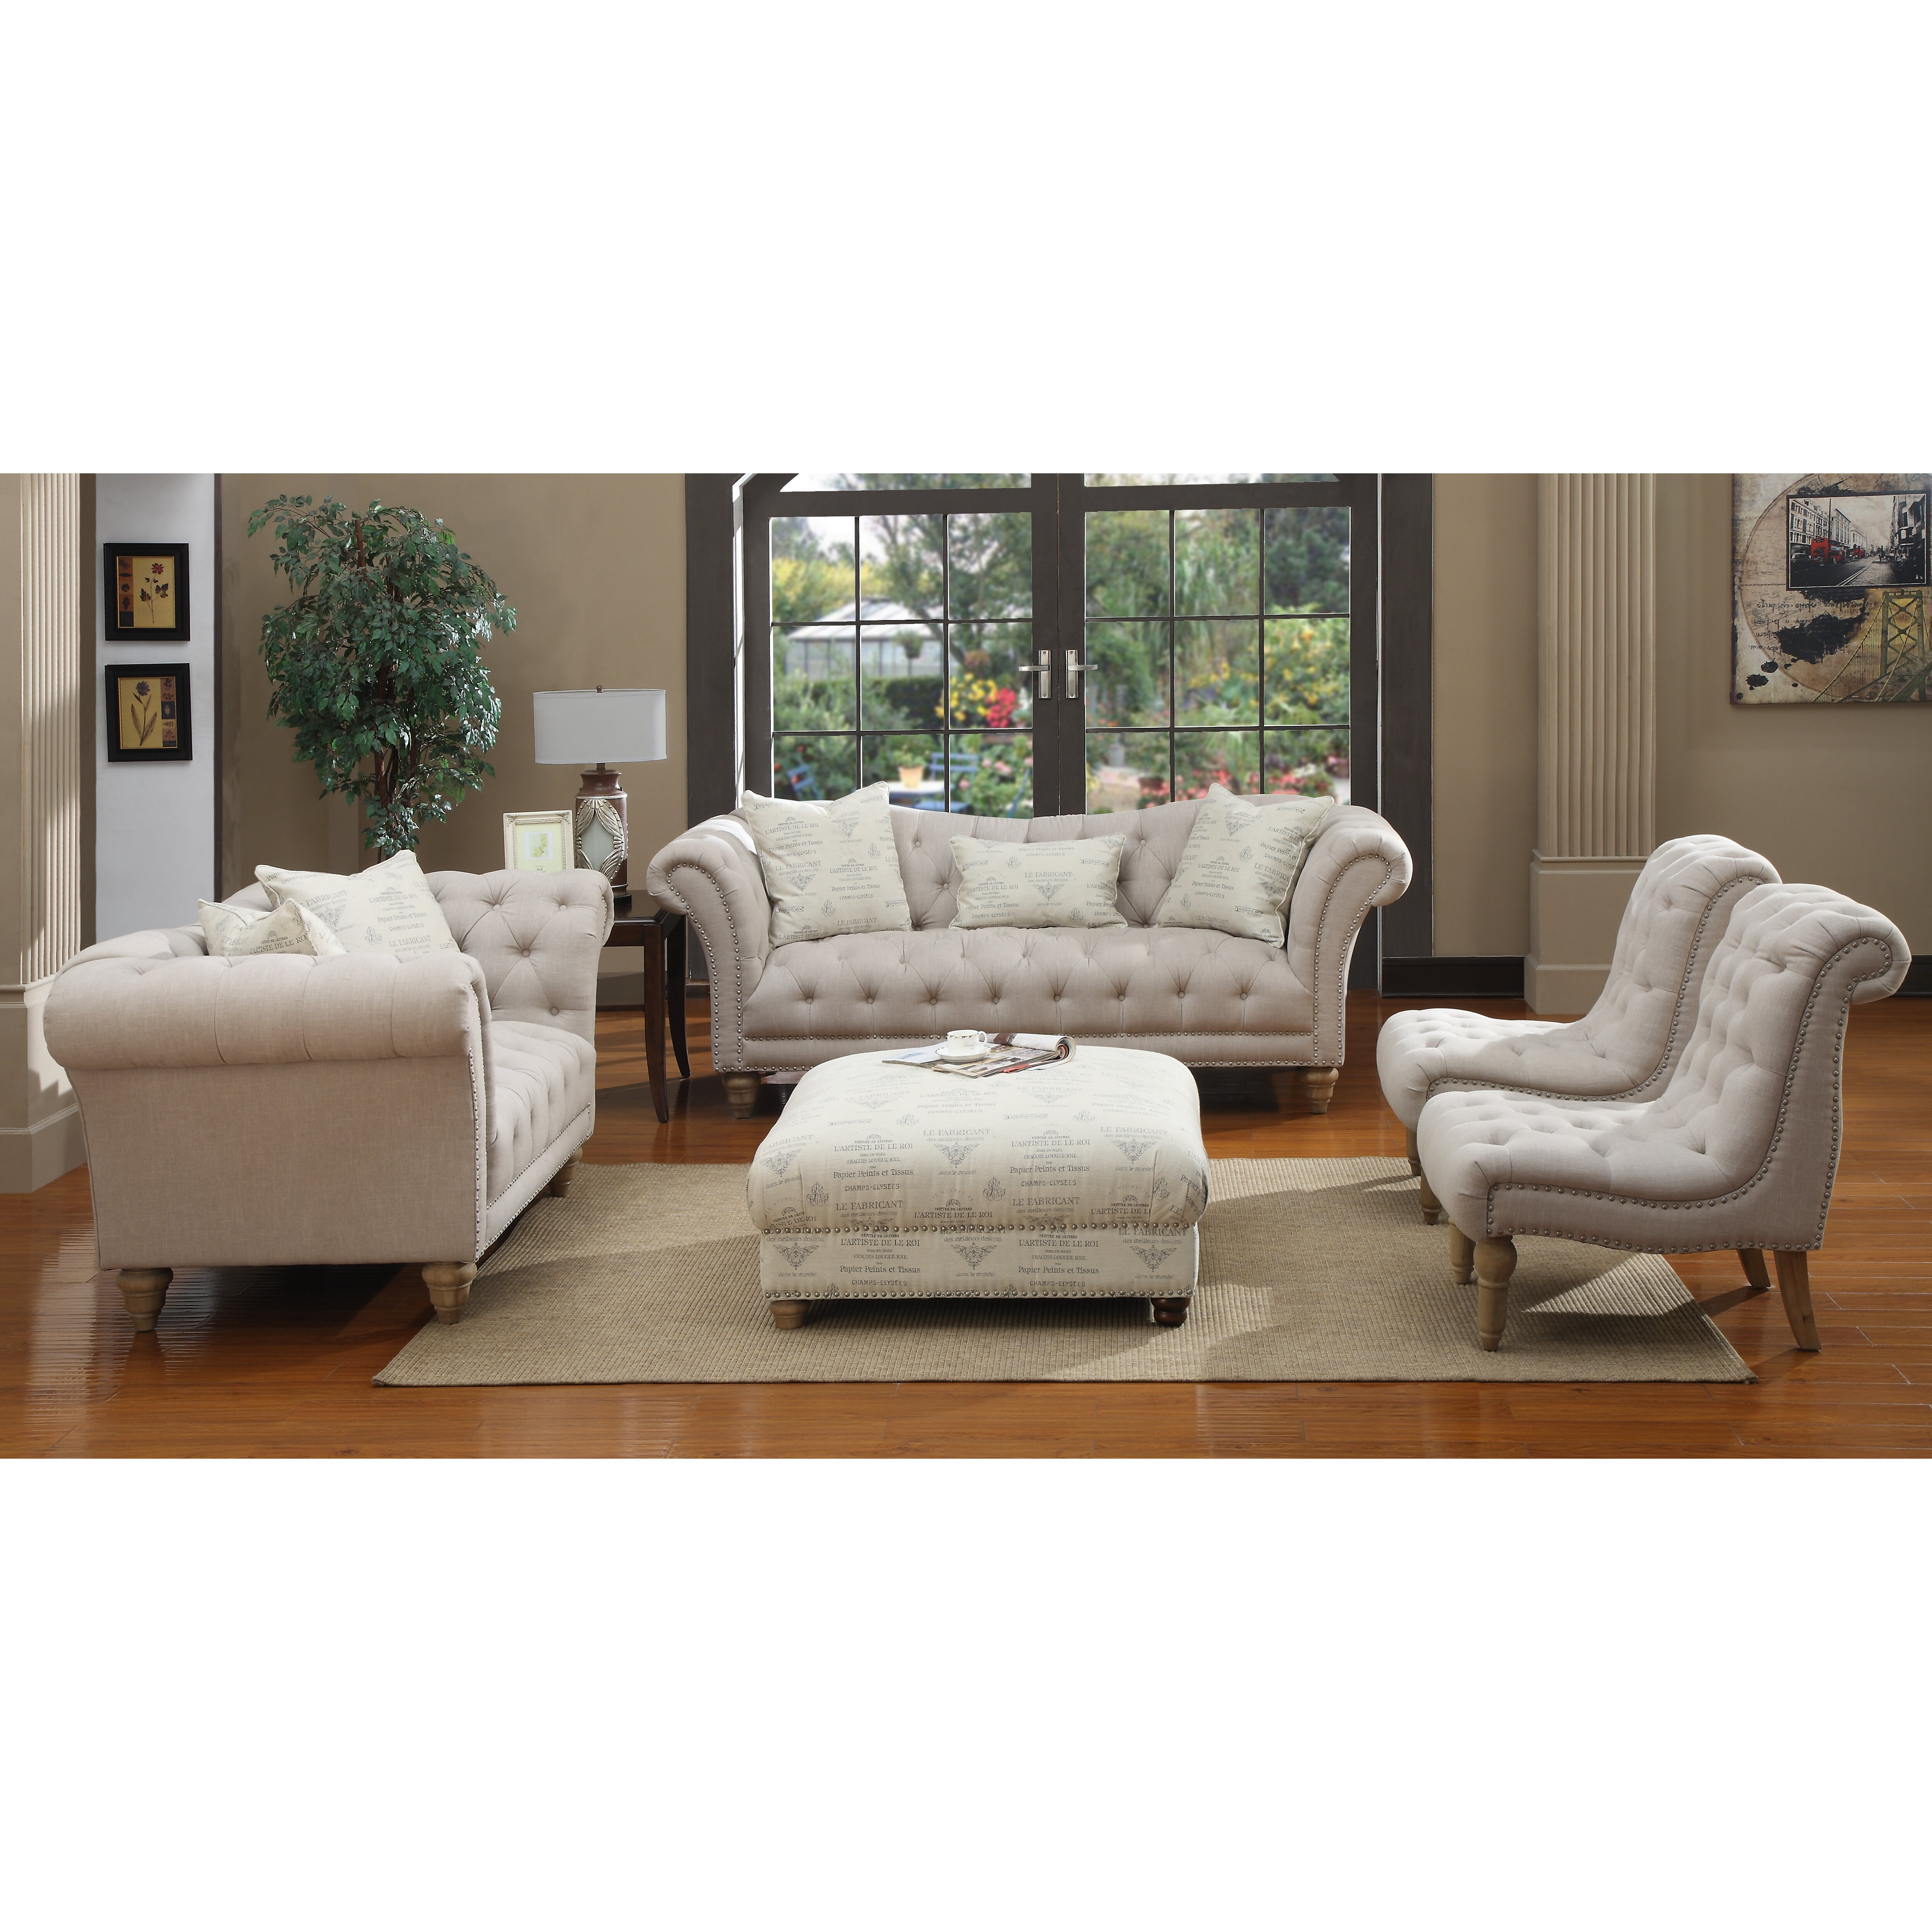 Leather Accent Chairs For Living Room Accent Chairs For Living Room Gorgeous Modern Accent Chairs For